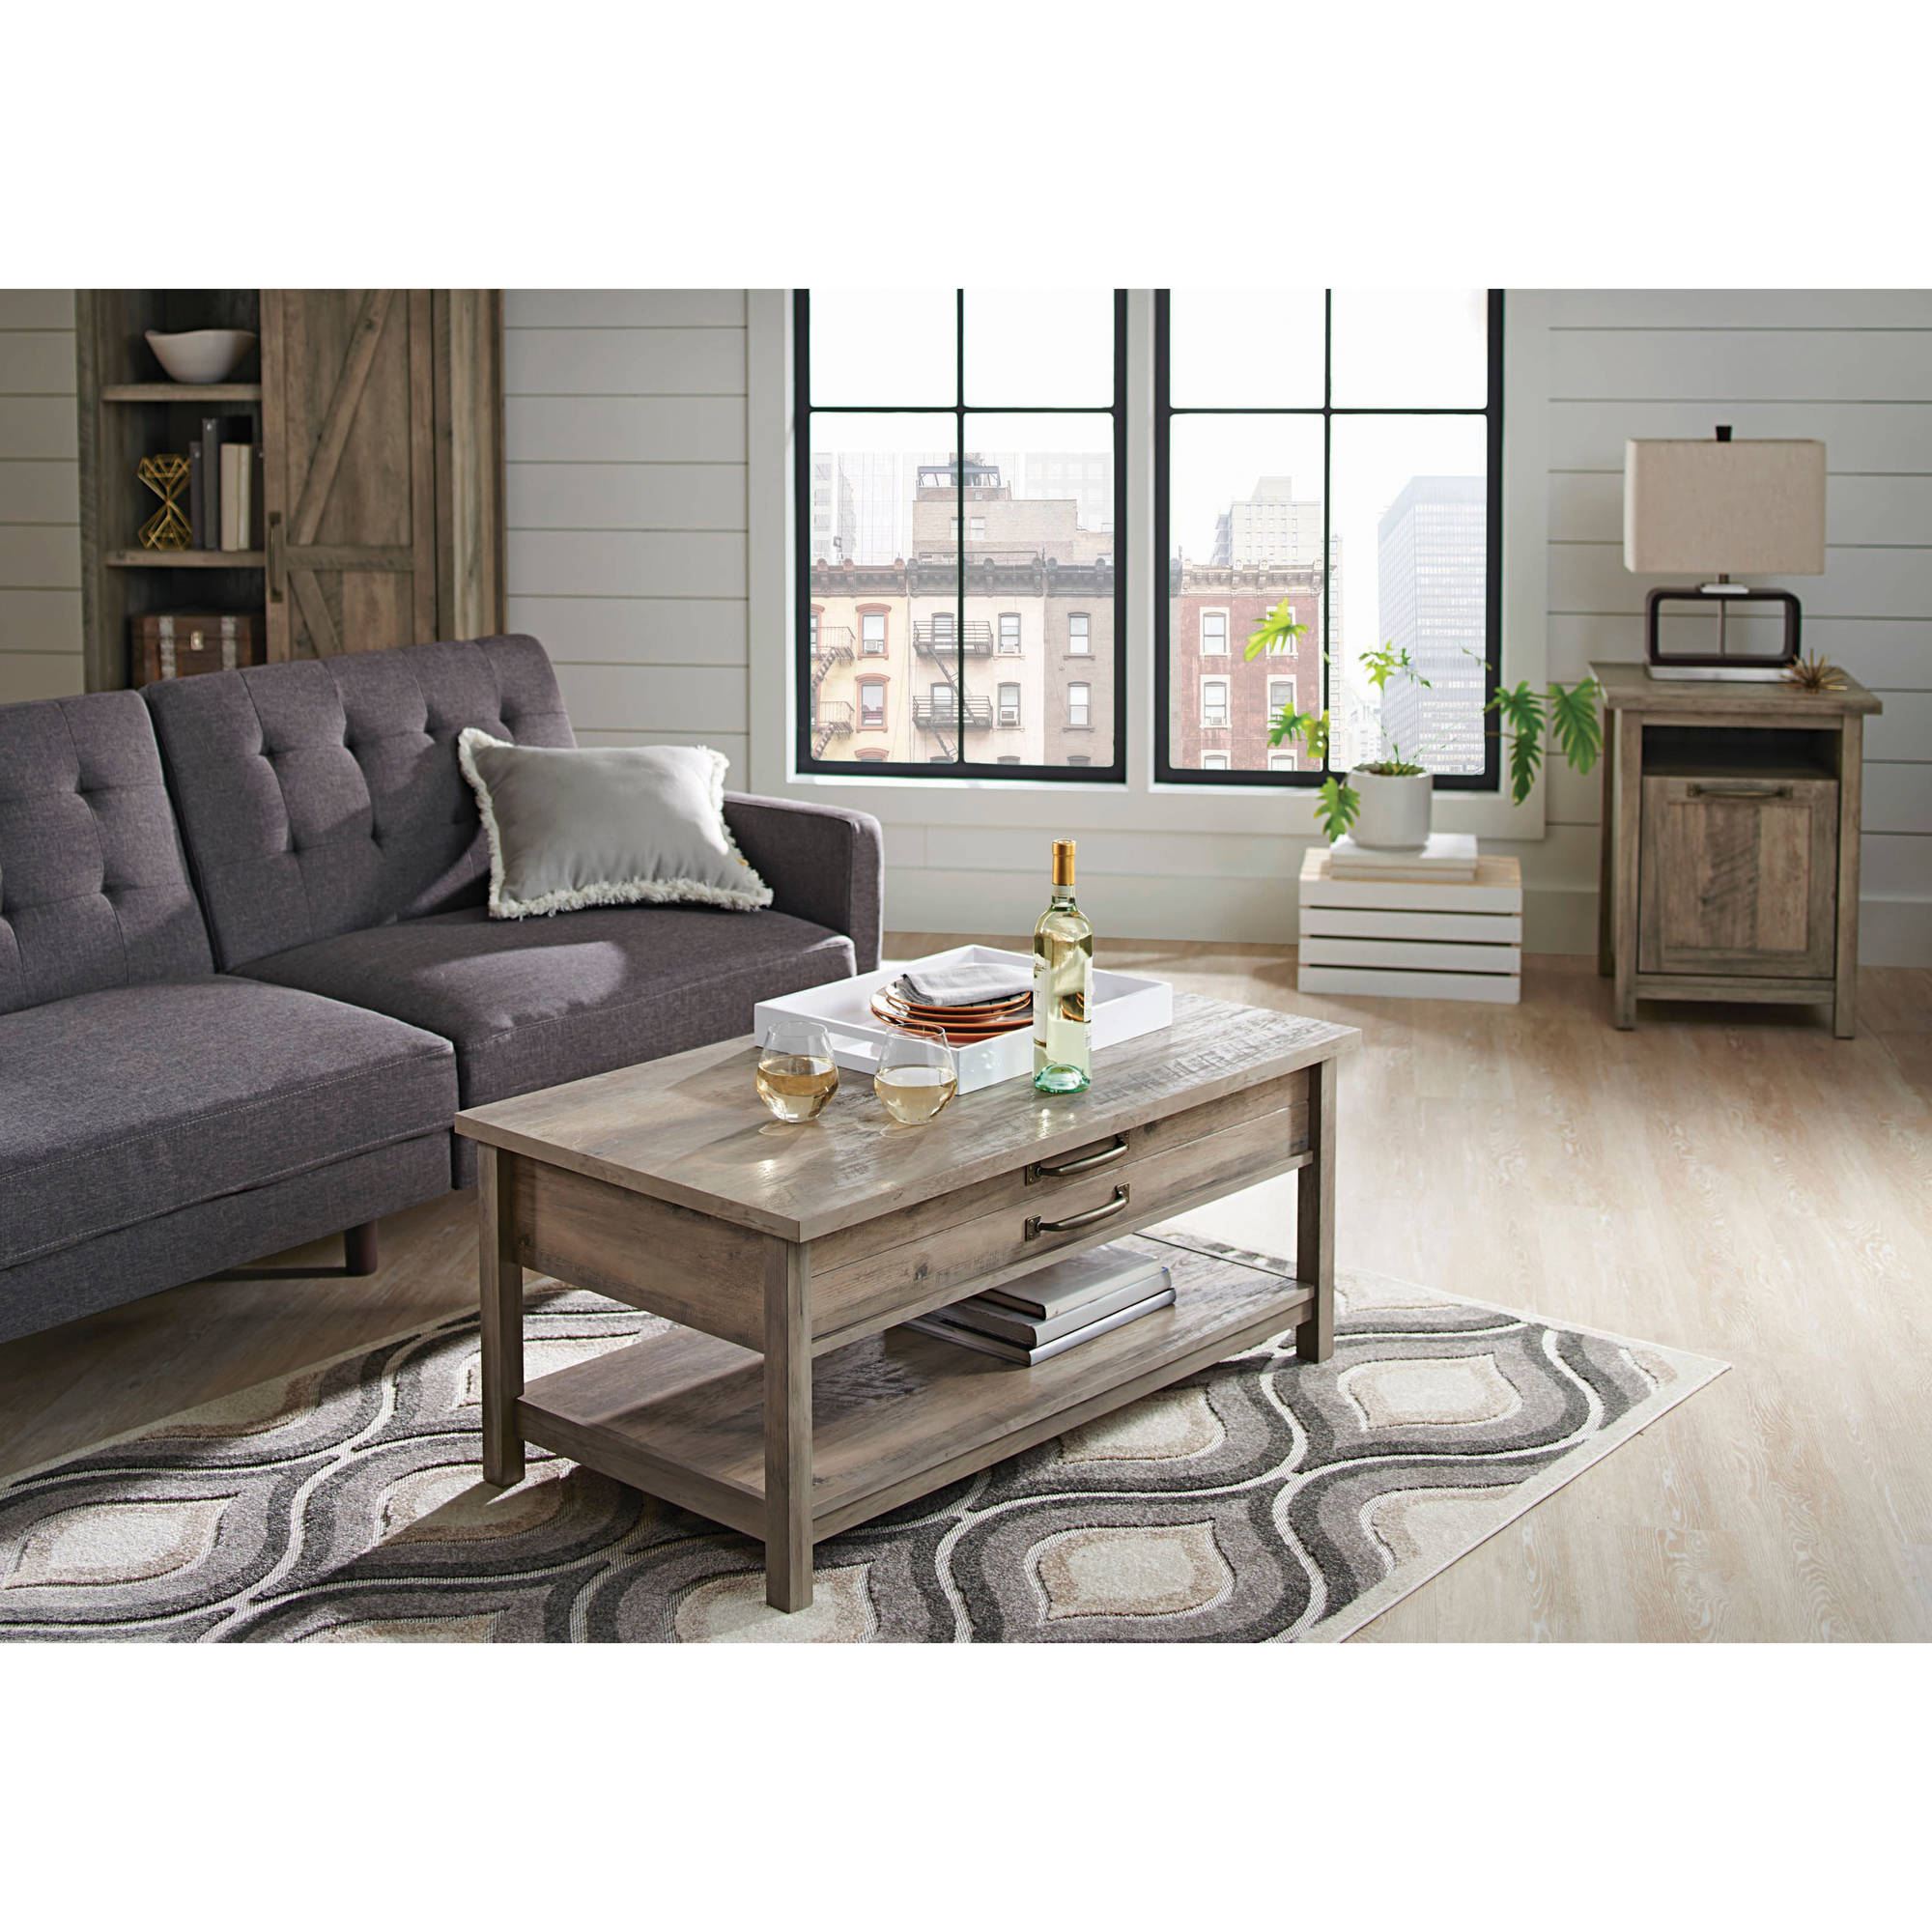 Better homes gardens modern farmhouse lift top coffee table rustic gray finish walmart com